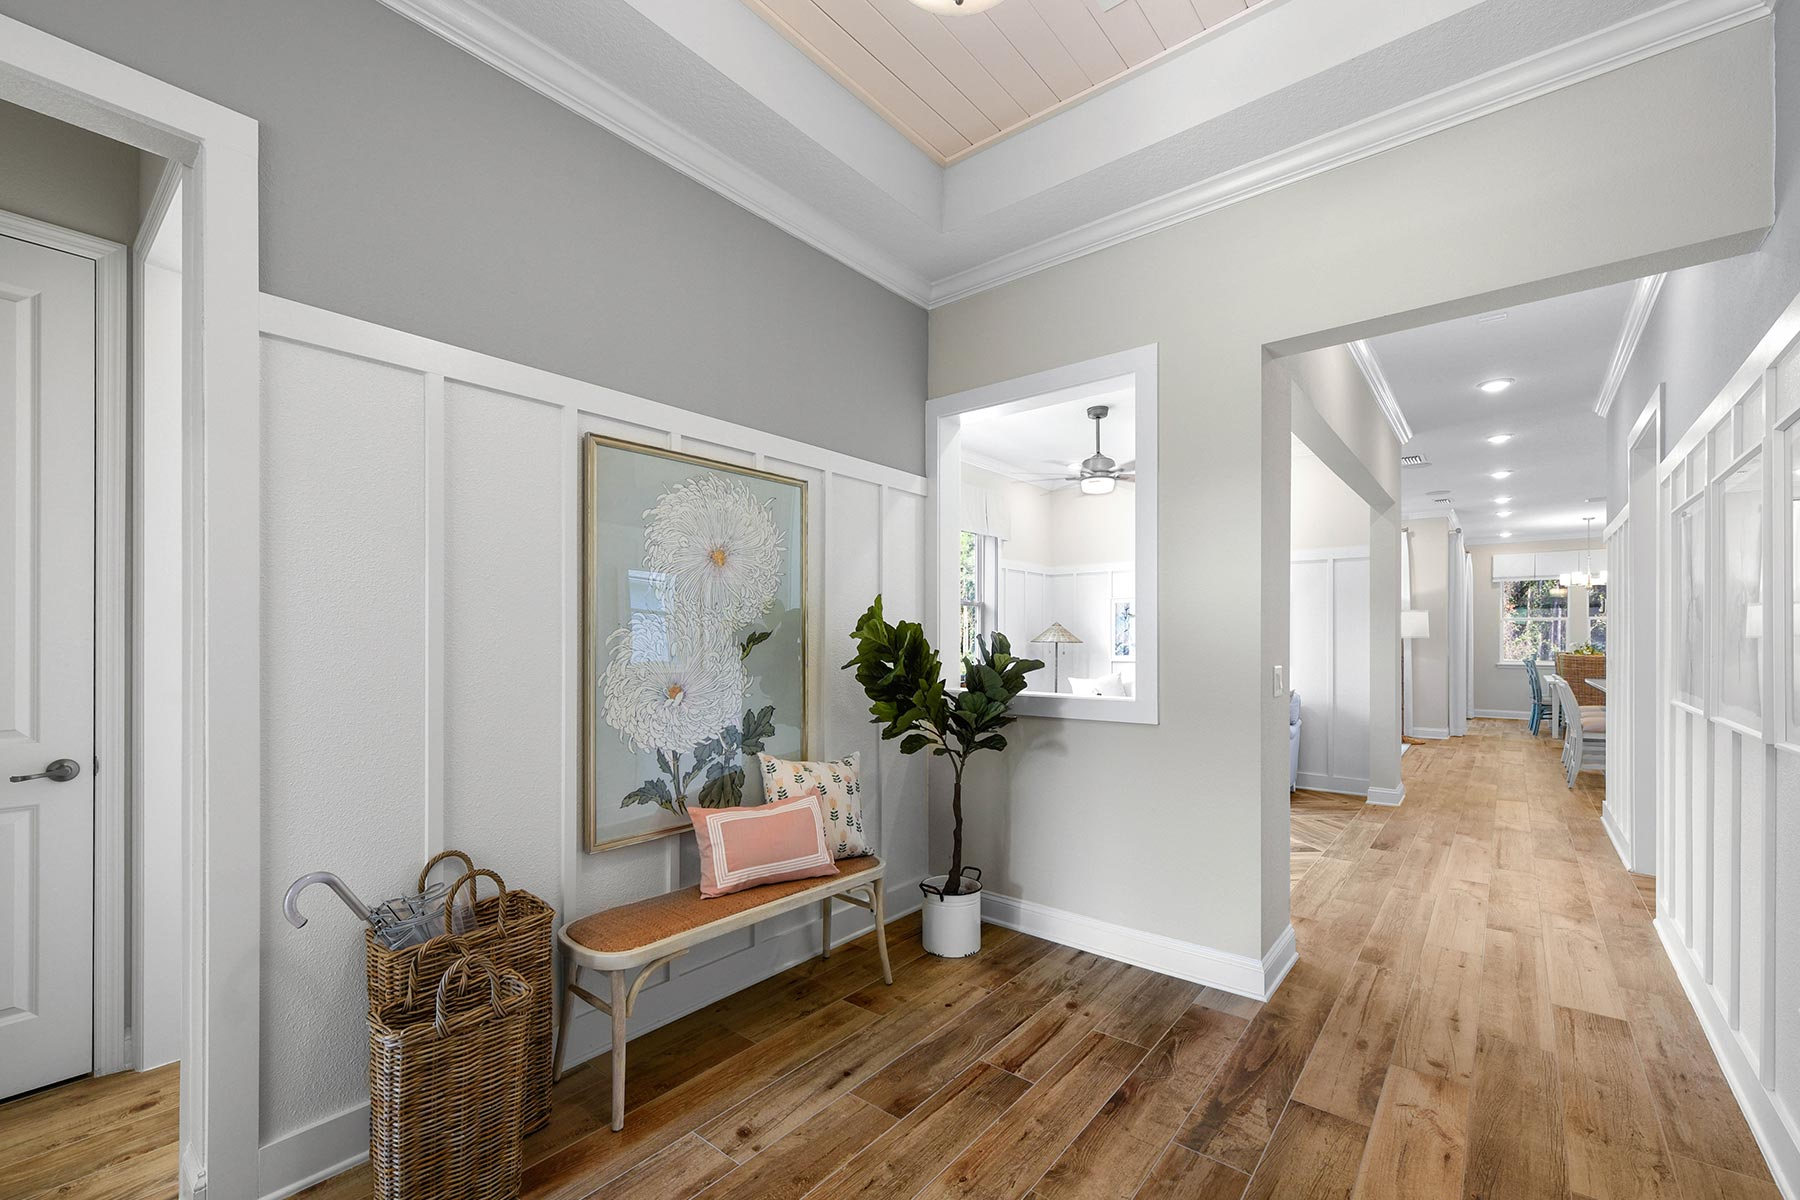 Court Plan Hallway at RiverTown - WaterSong in St. Johns Florida by Mattamy Homes